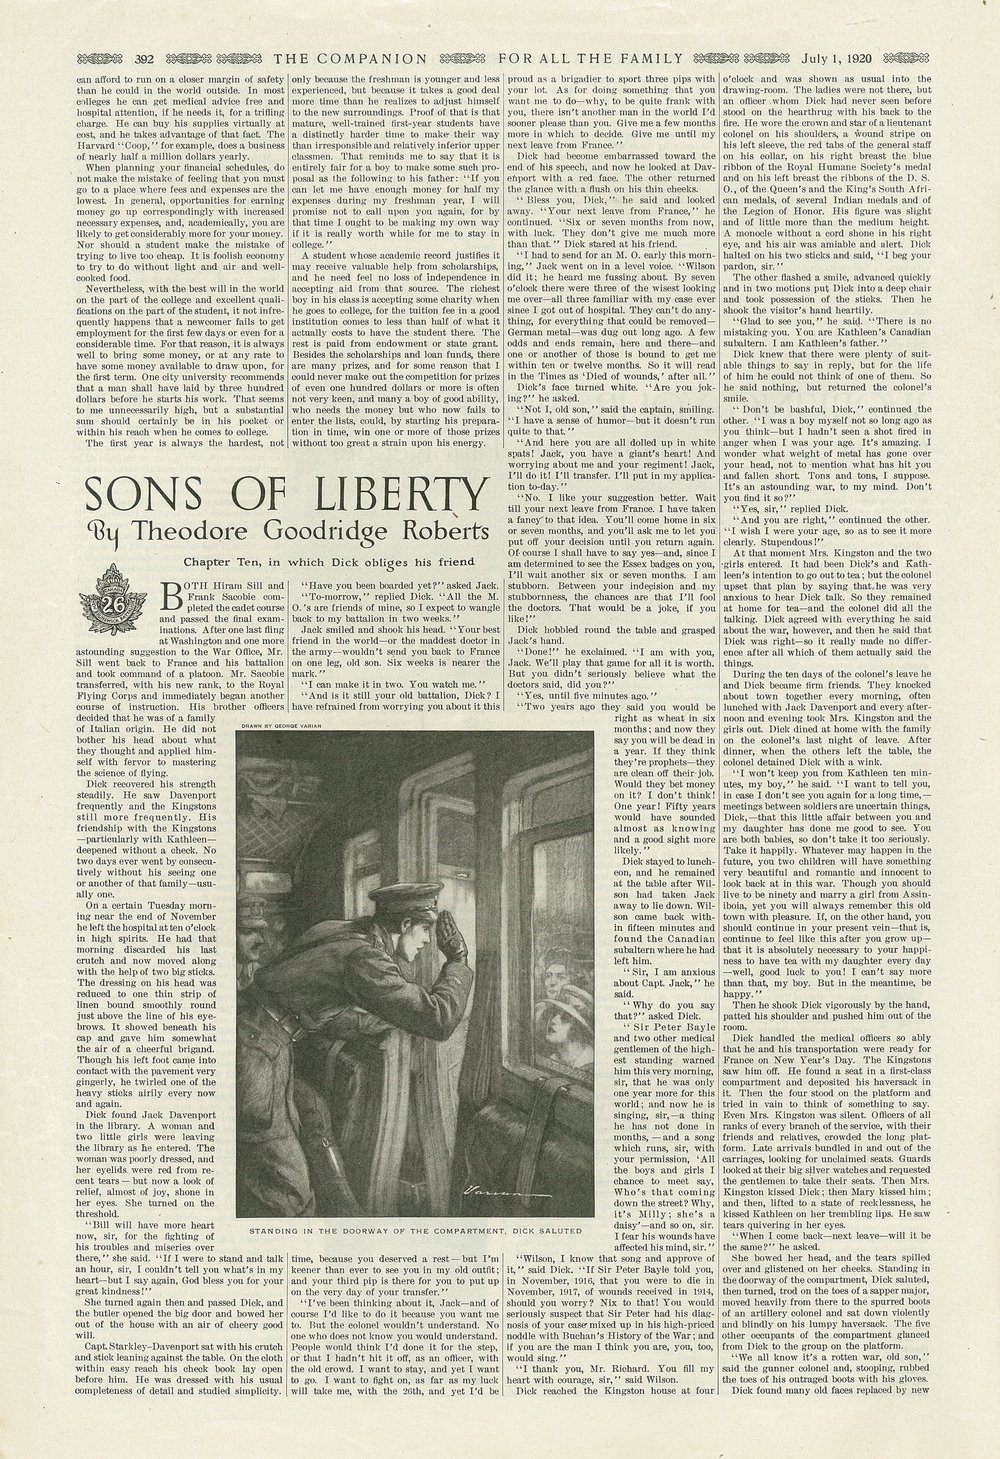 The Youth's Companion - July 1st, 1920 - Vol. 94 - No. 27